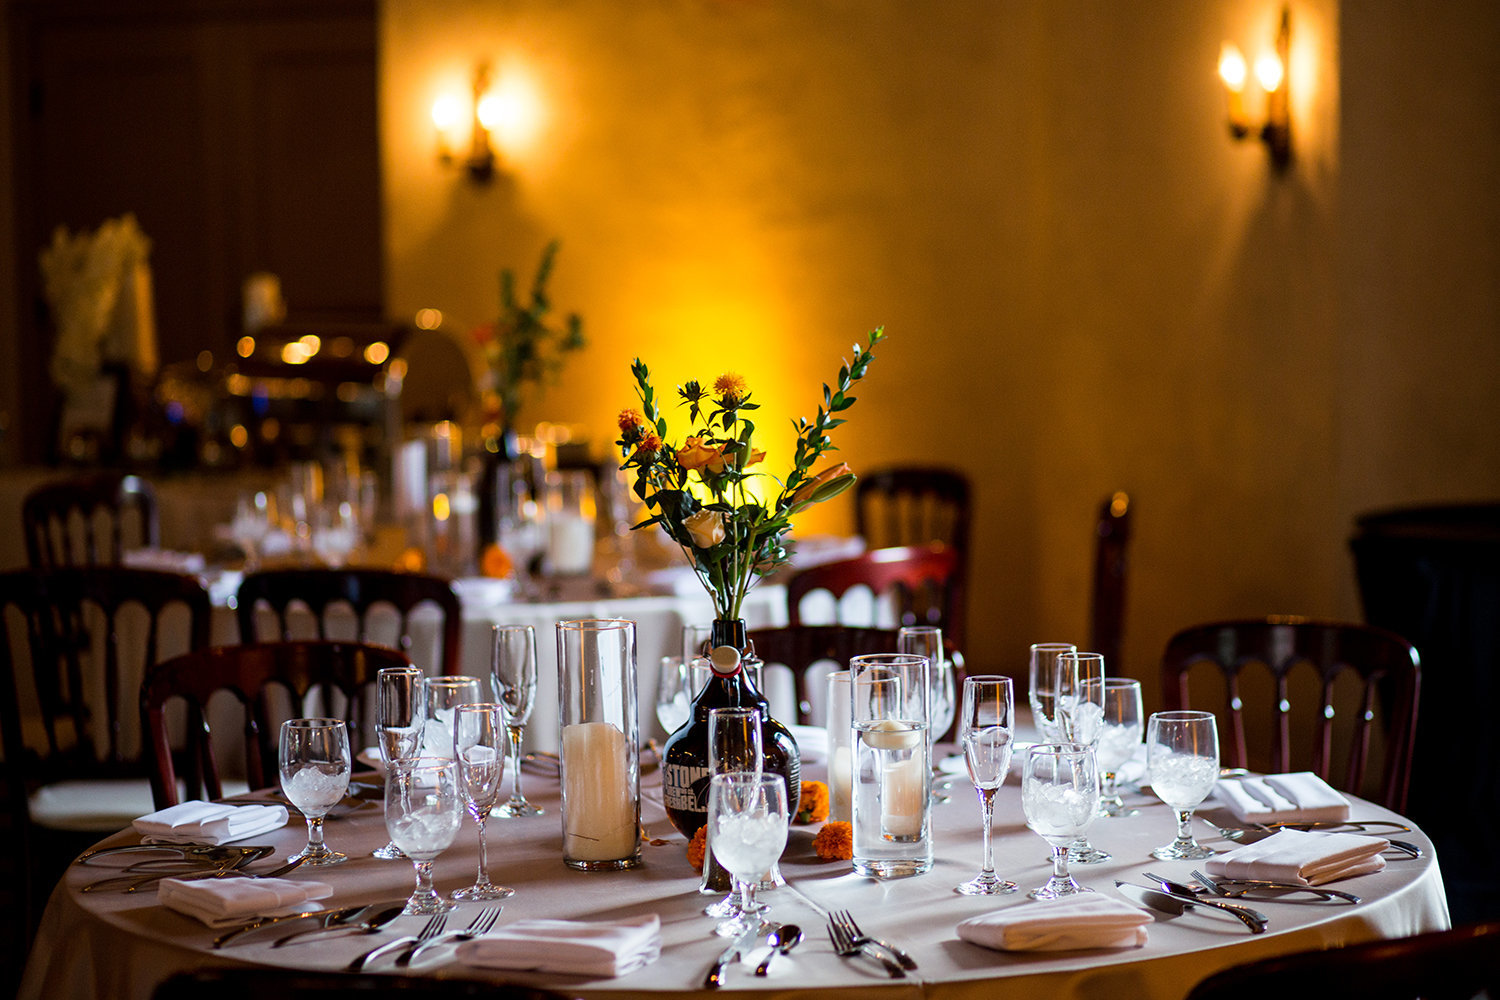 Warm amber uplighting set the perfect mood for this wedding table setting